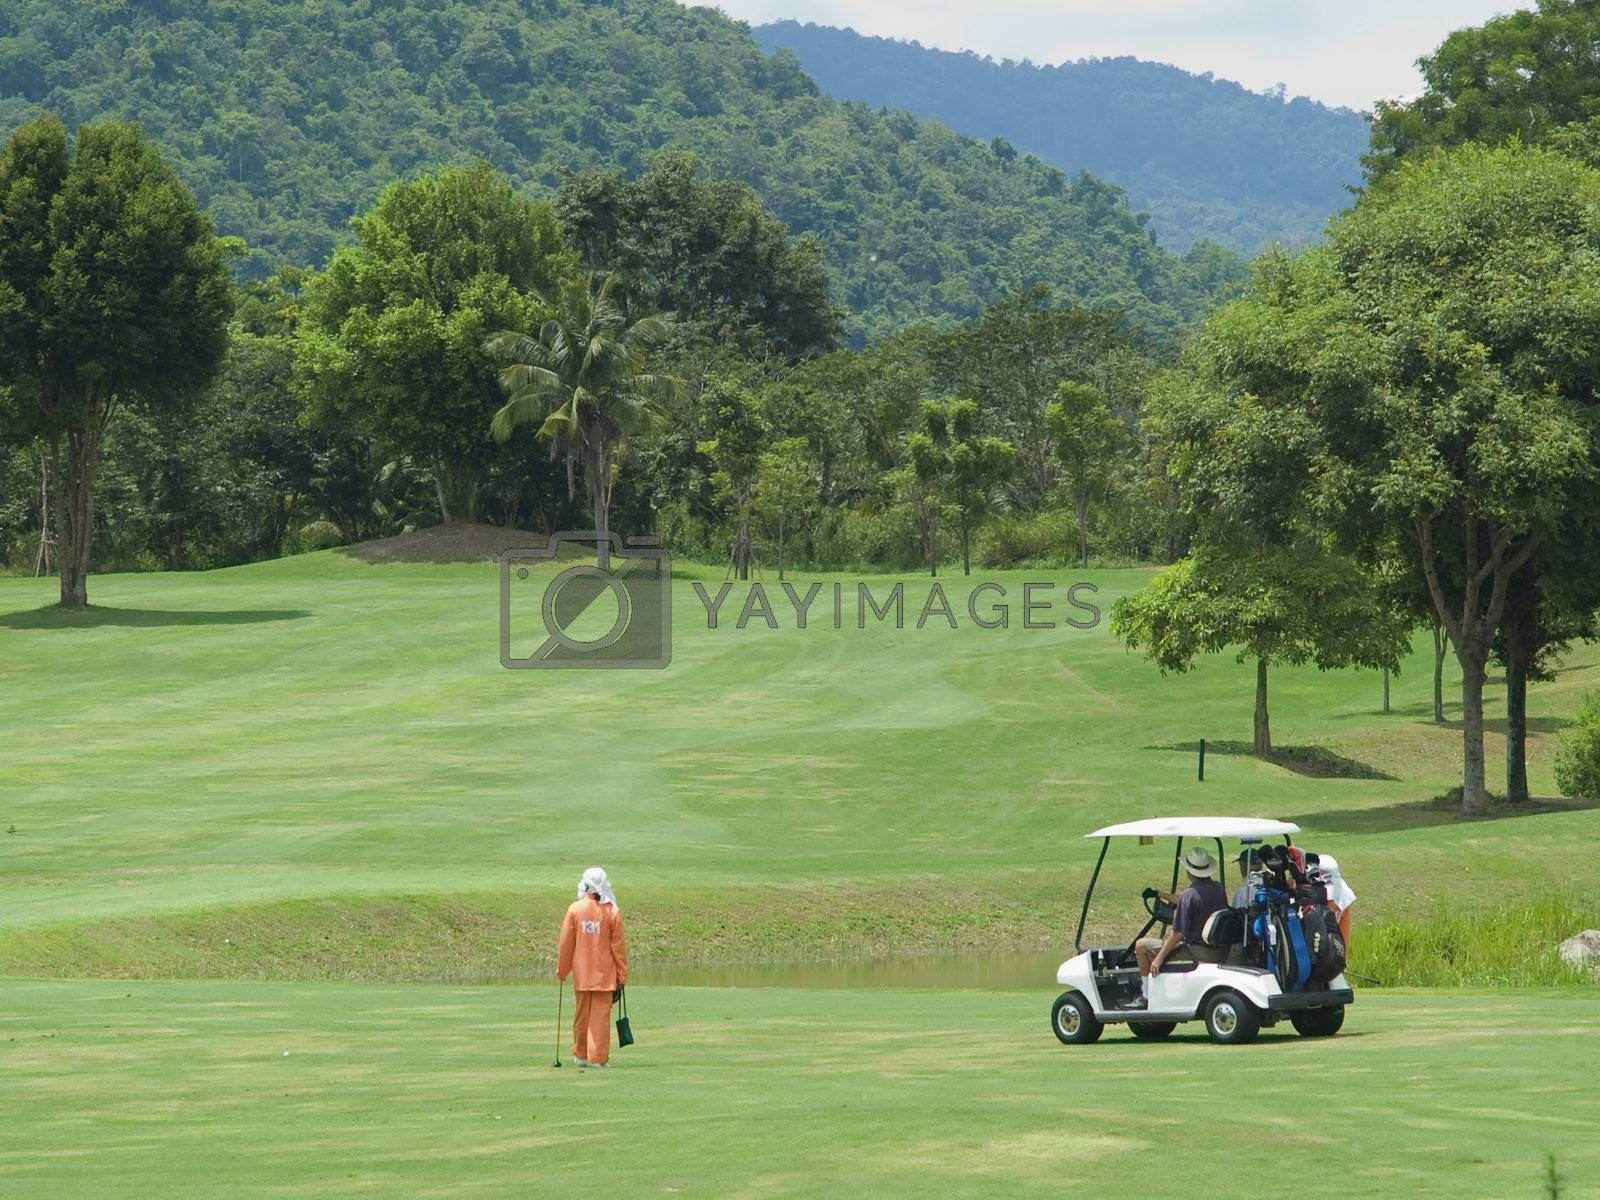 Caddie and golf cart on the fairway by epixx